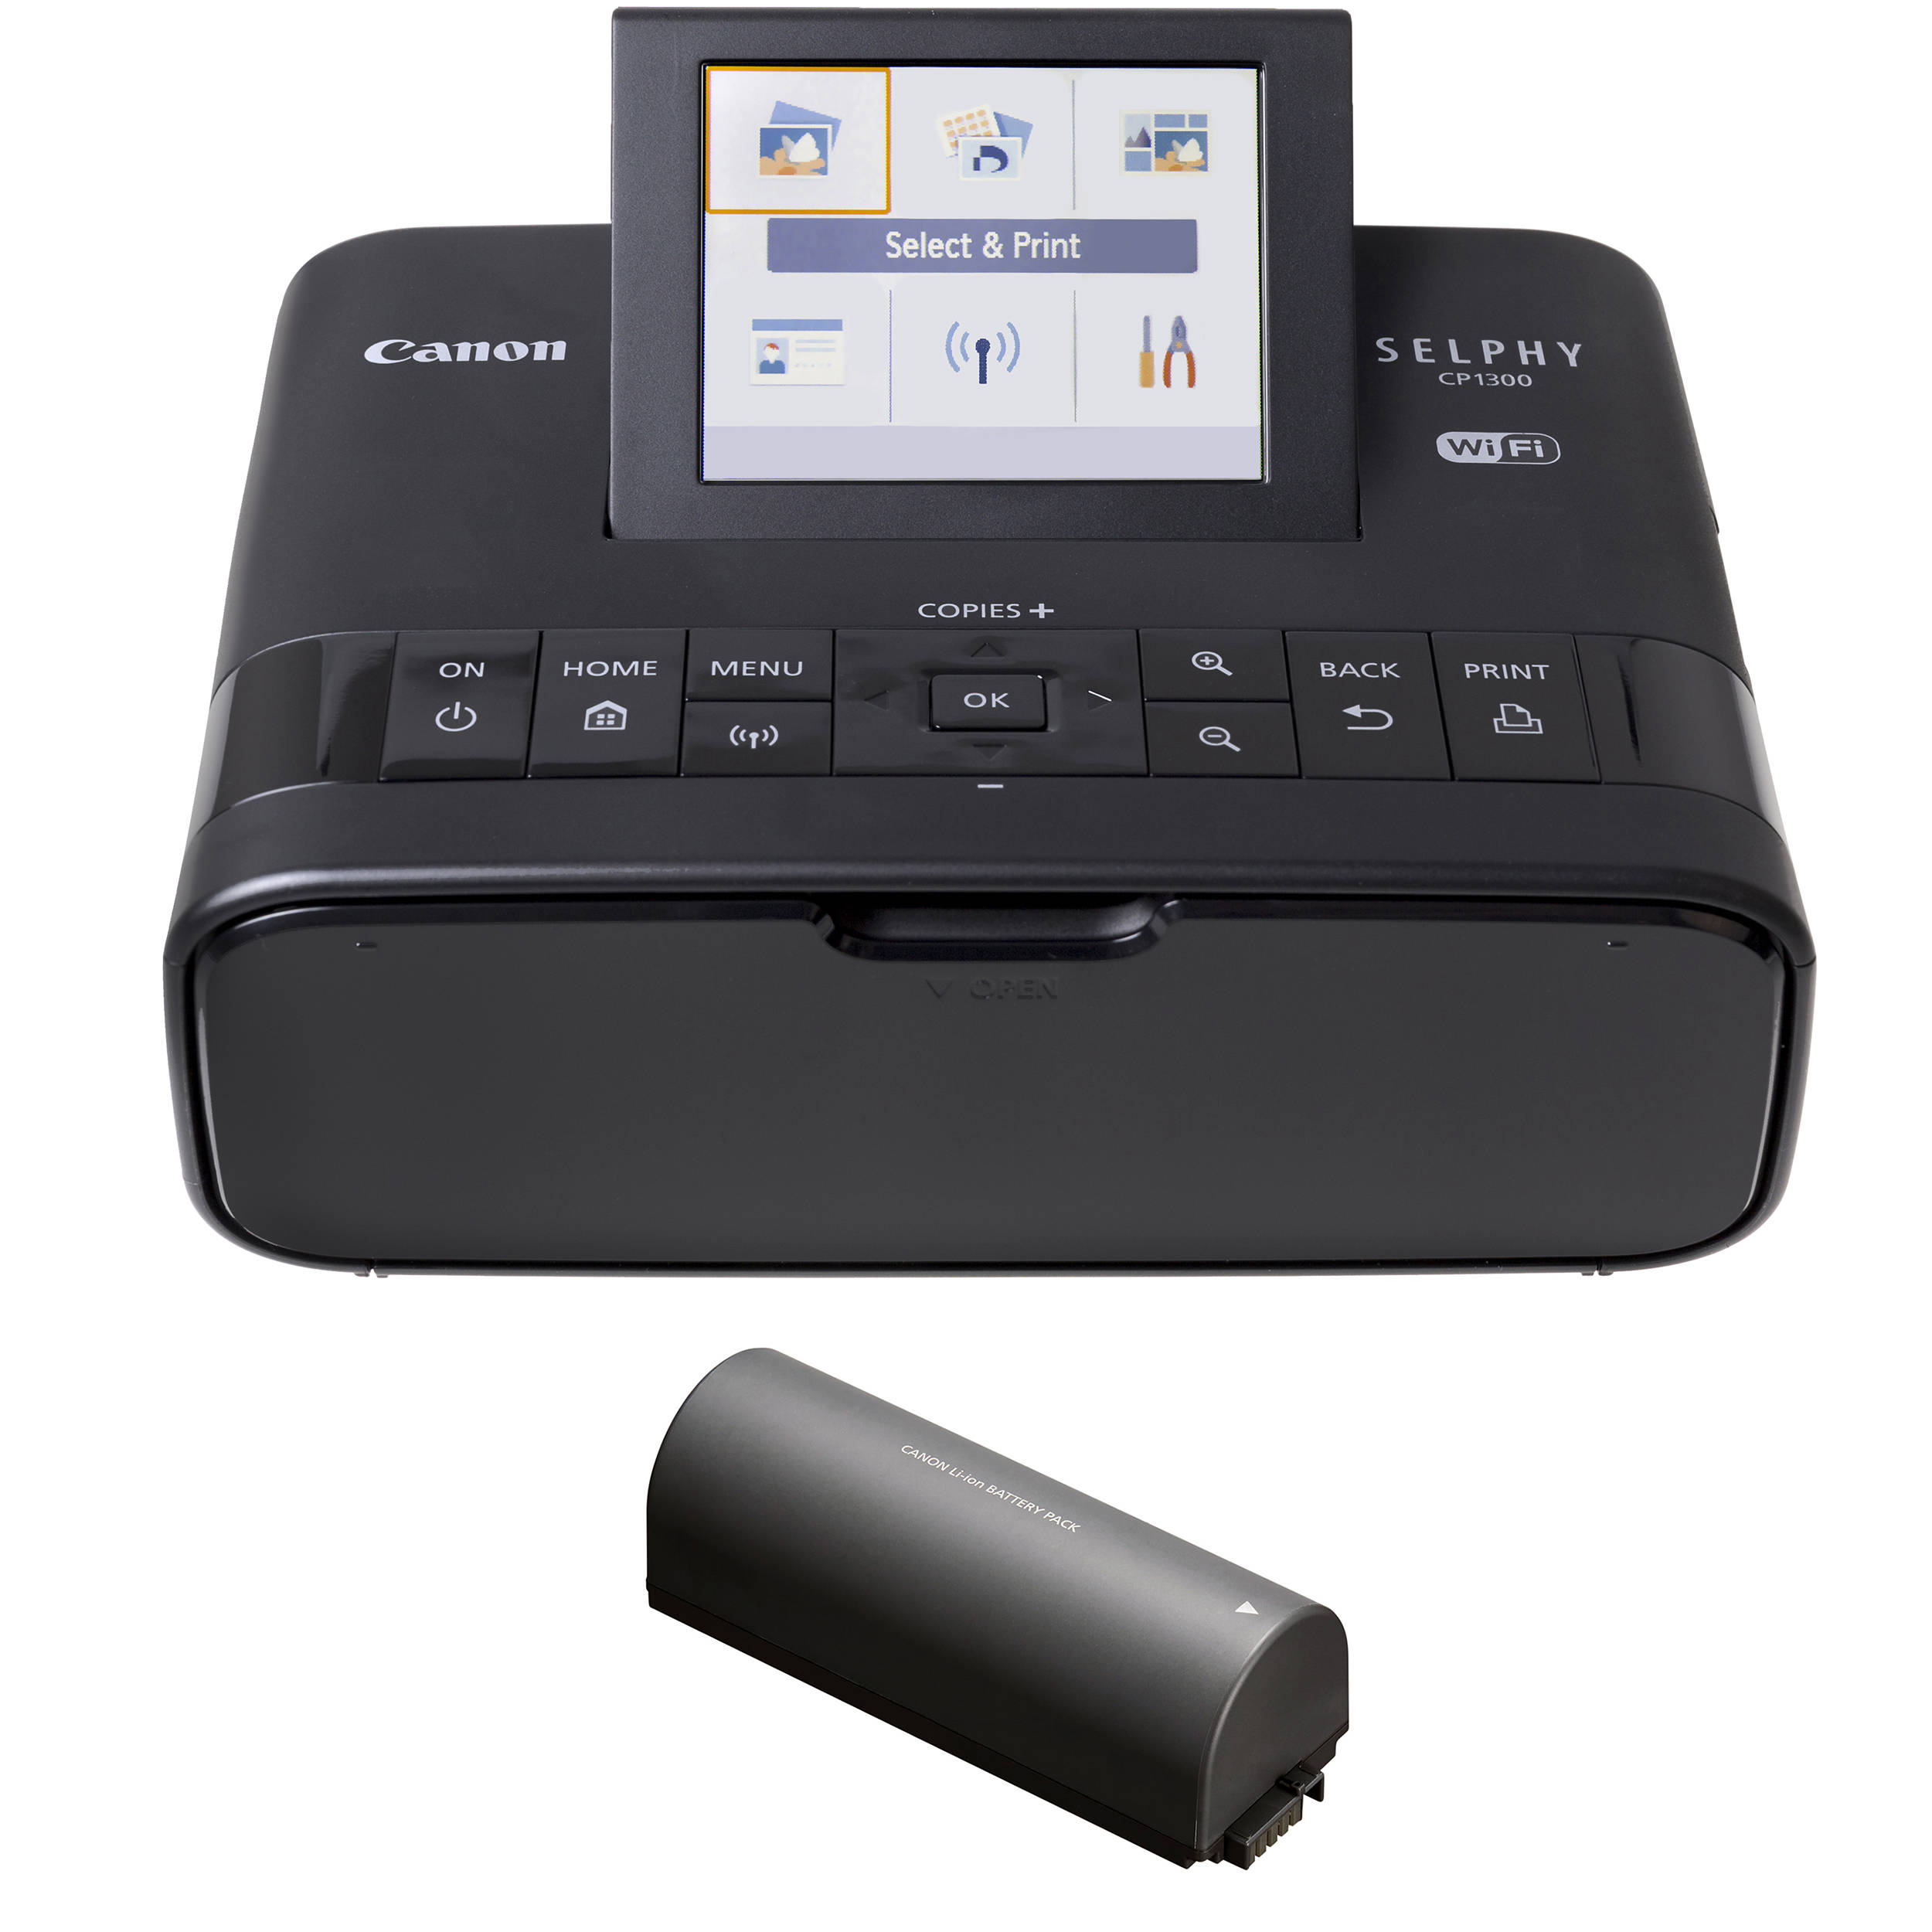 SELPHY PRINTER WINDOWS 8 X64 DRIVER